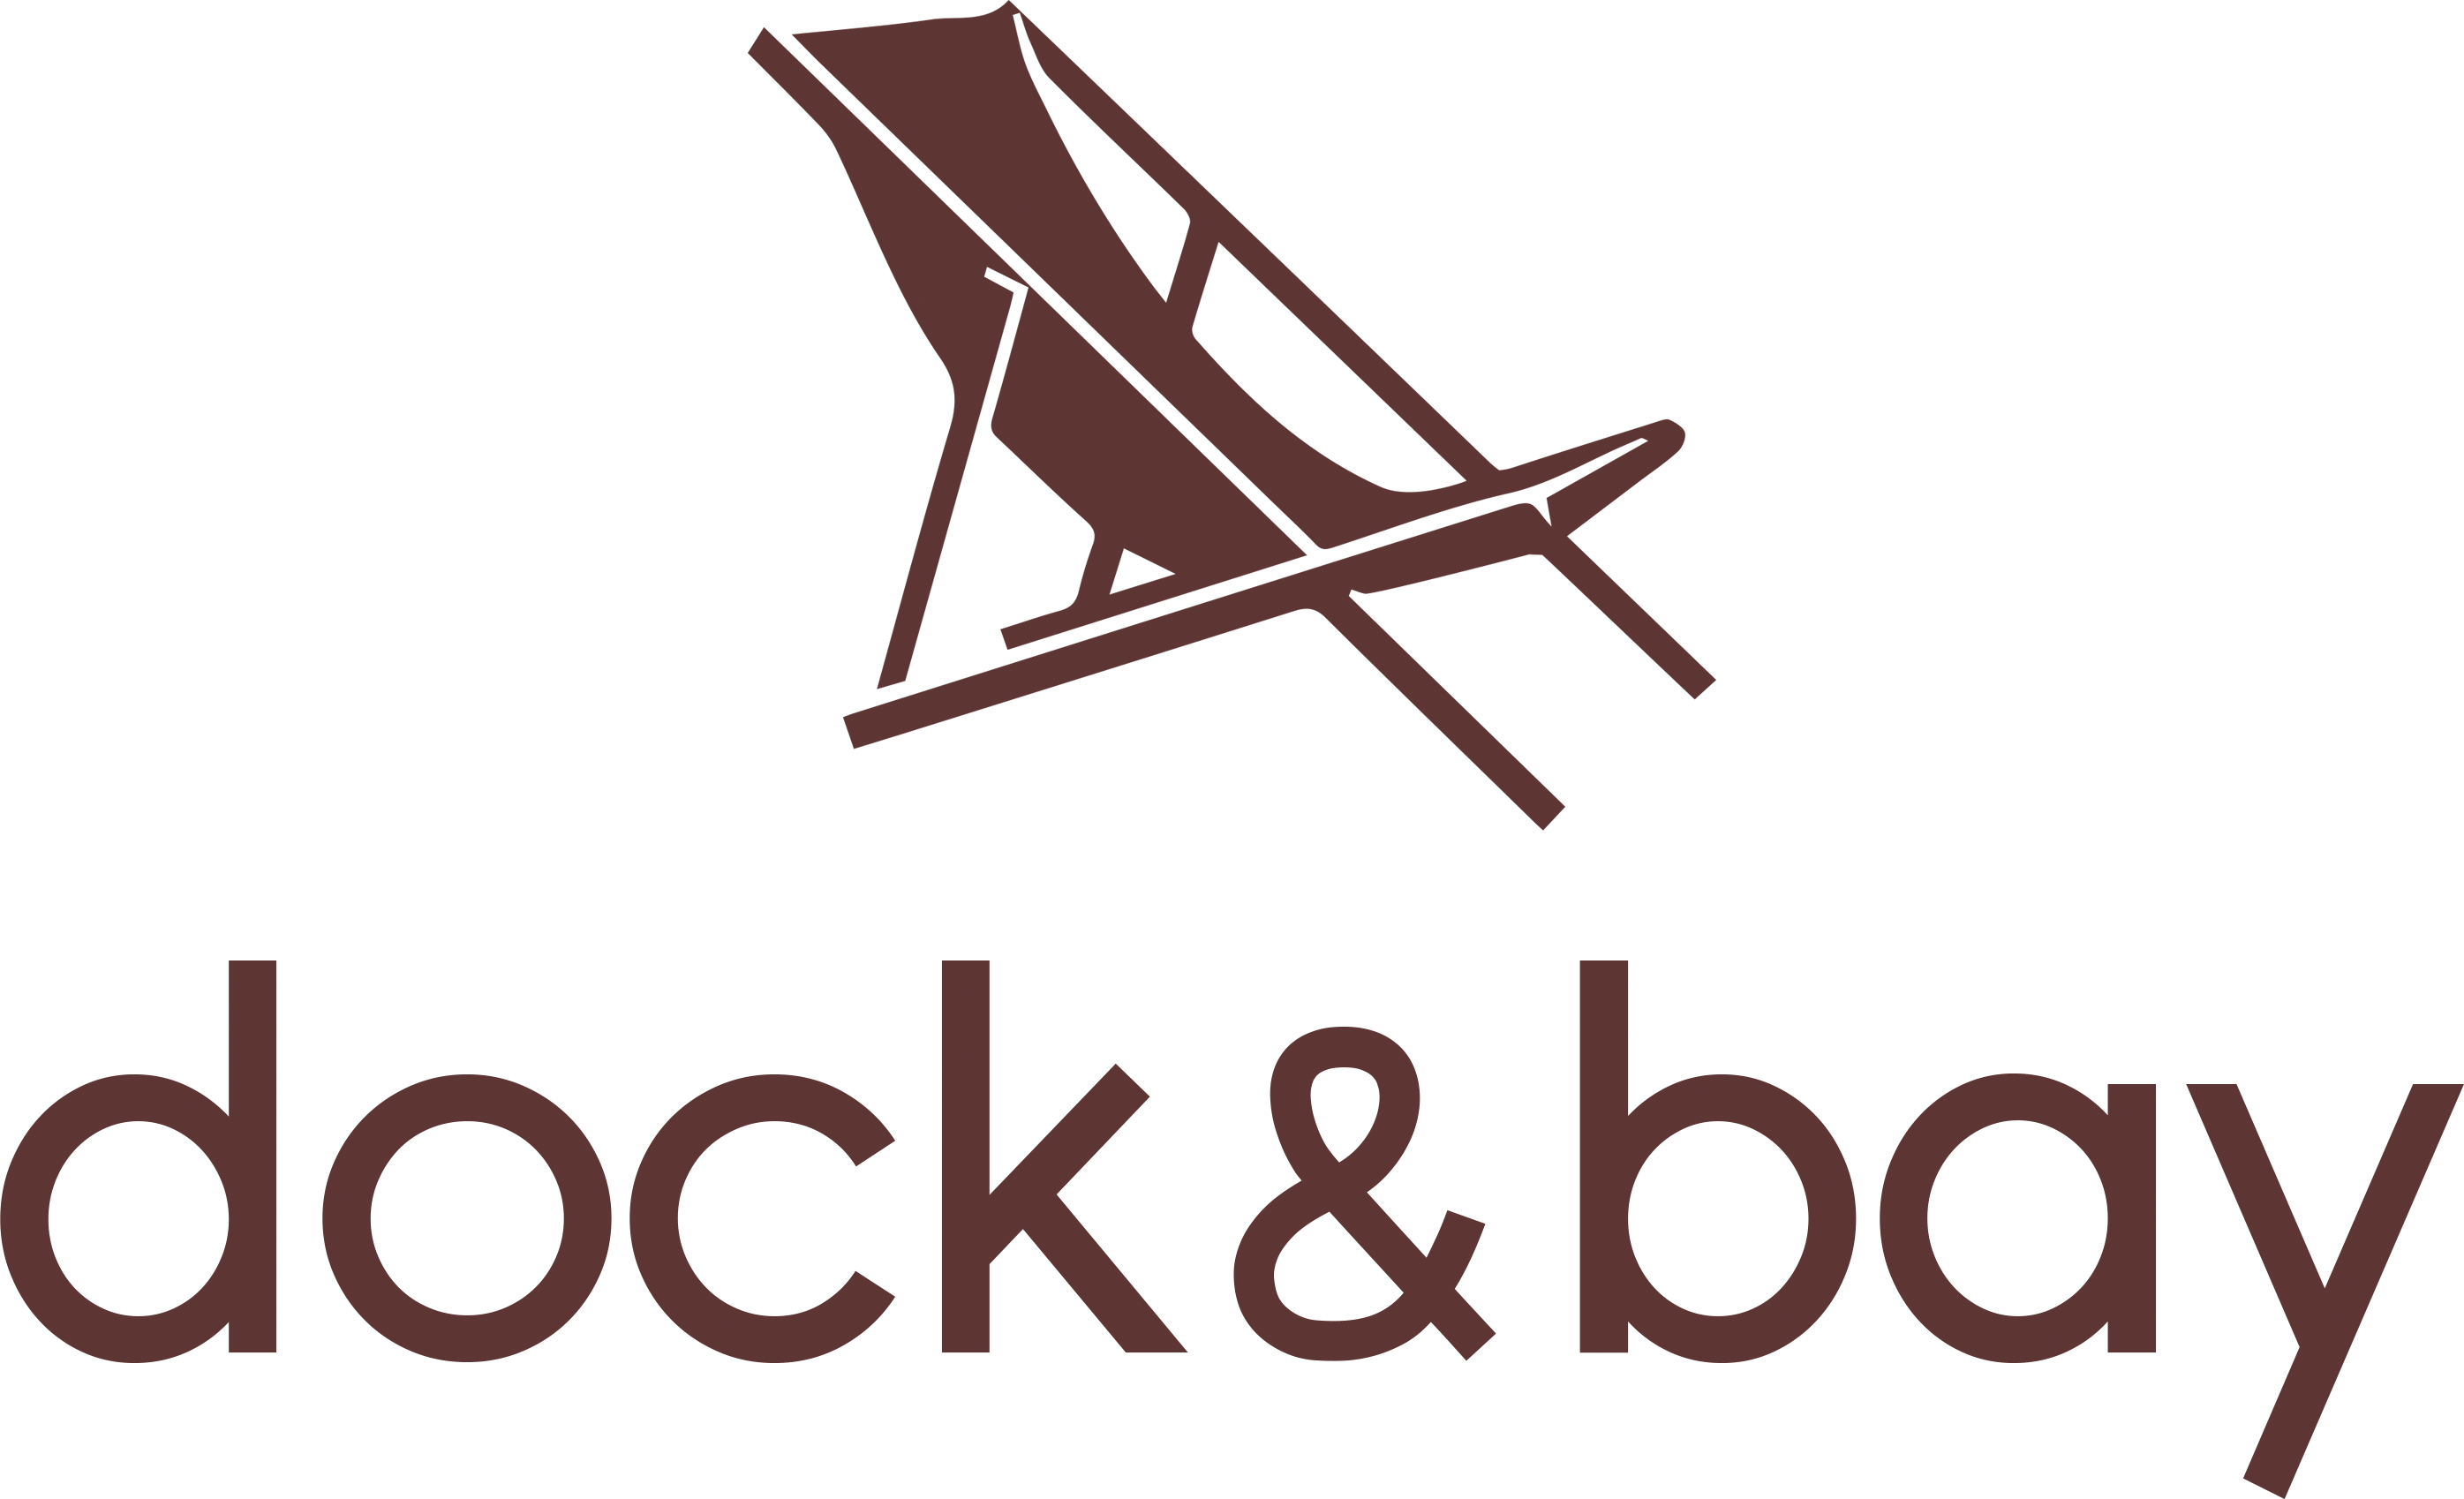 dock & bay logo